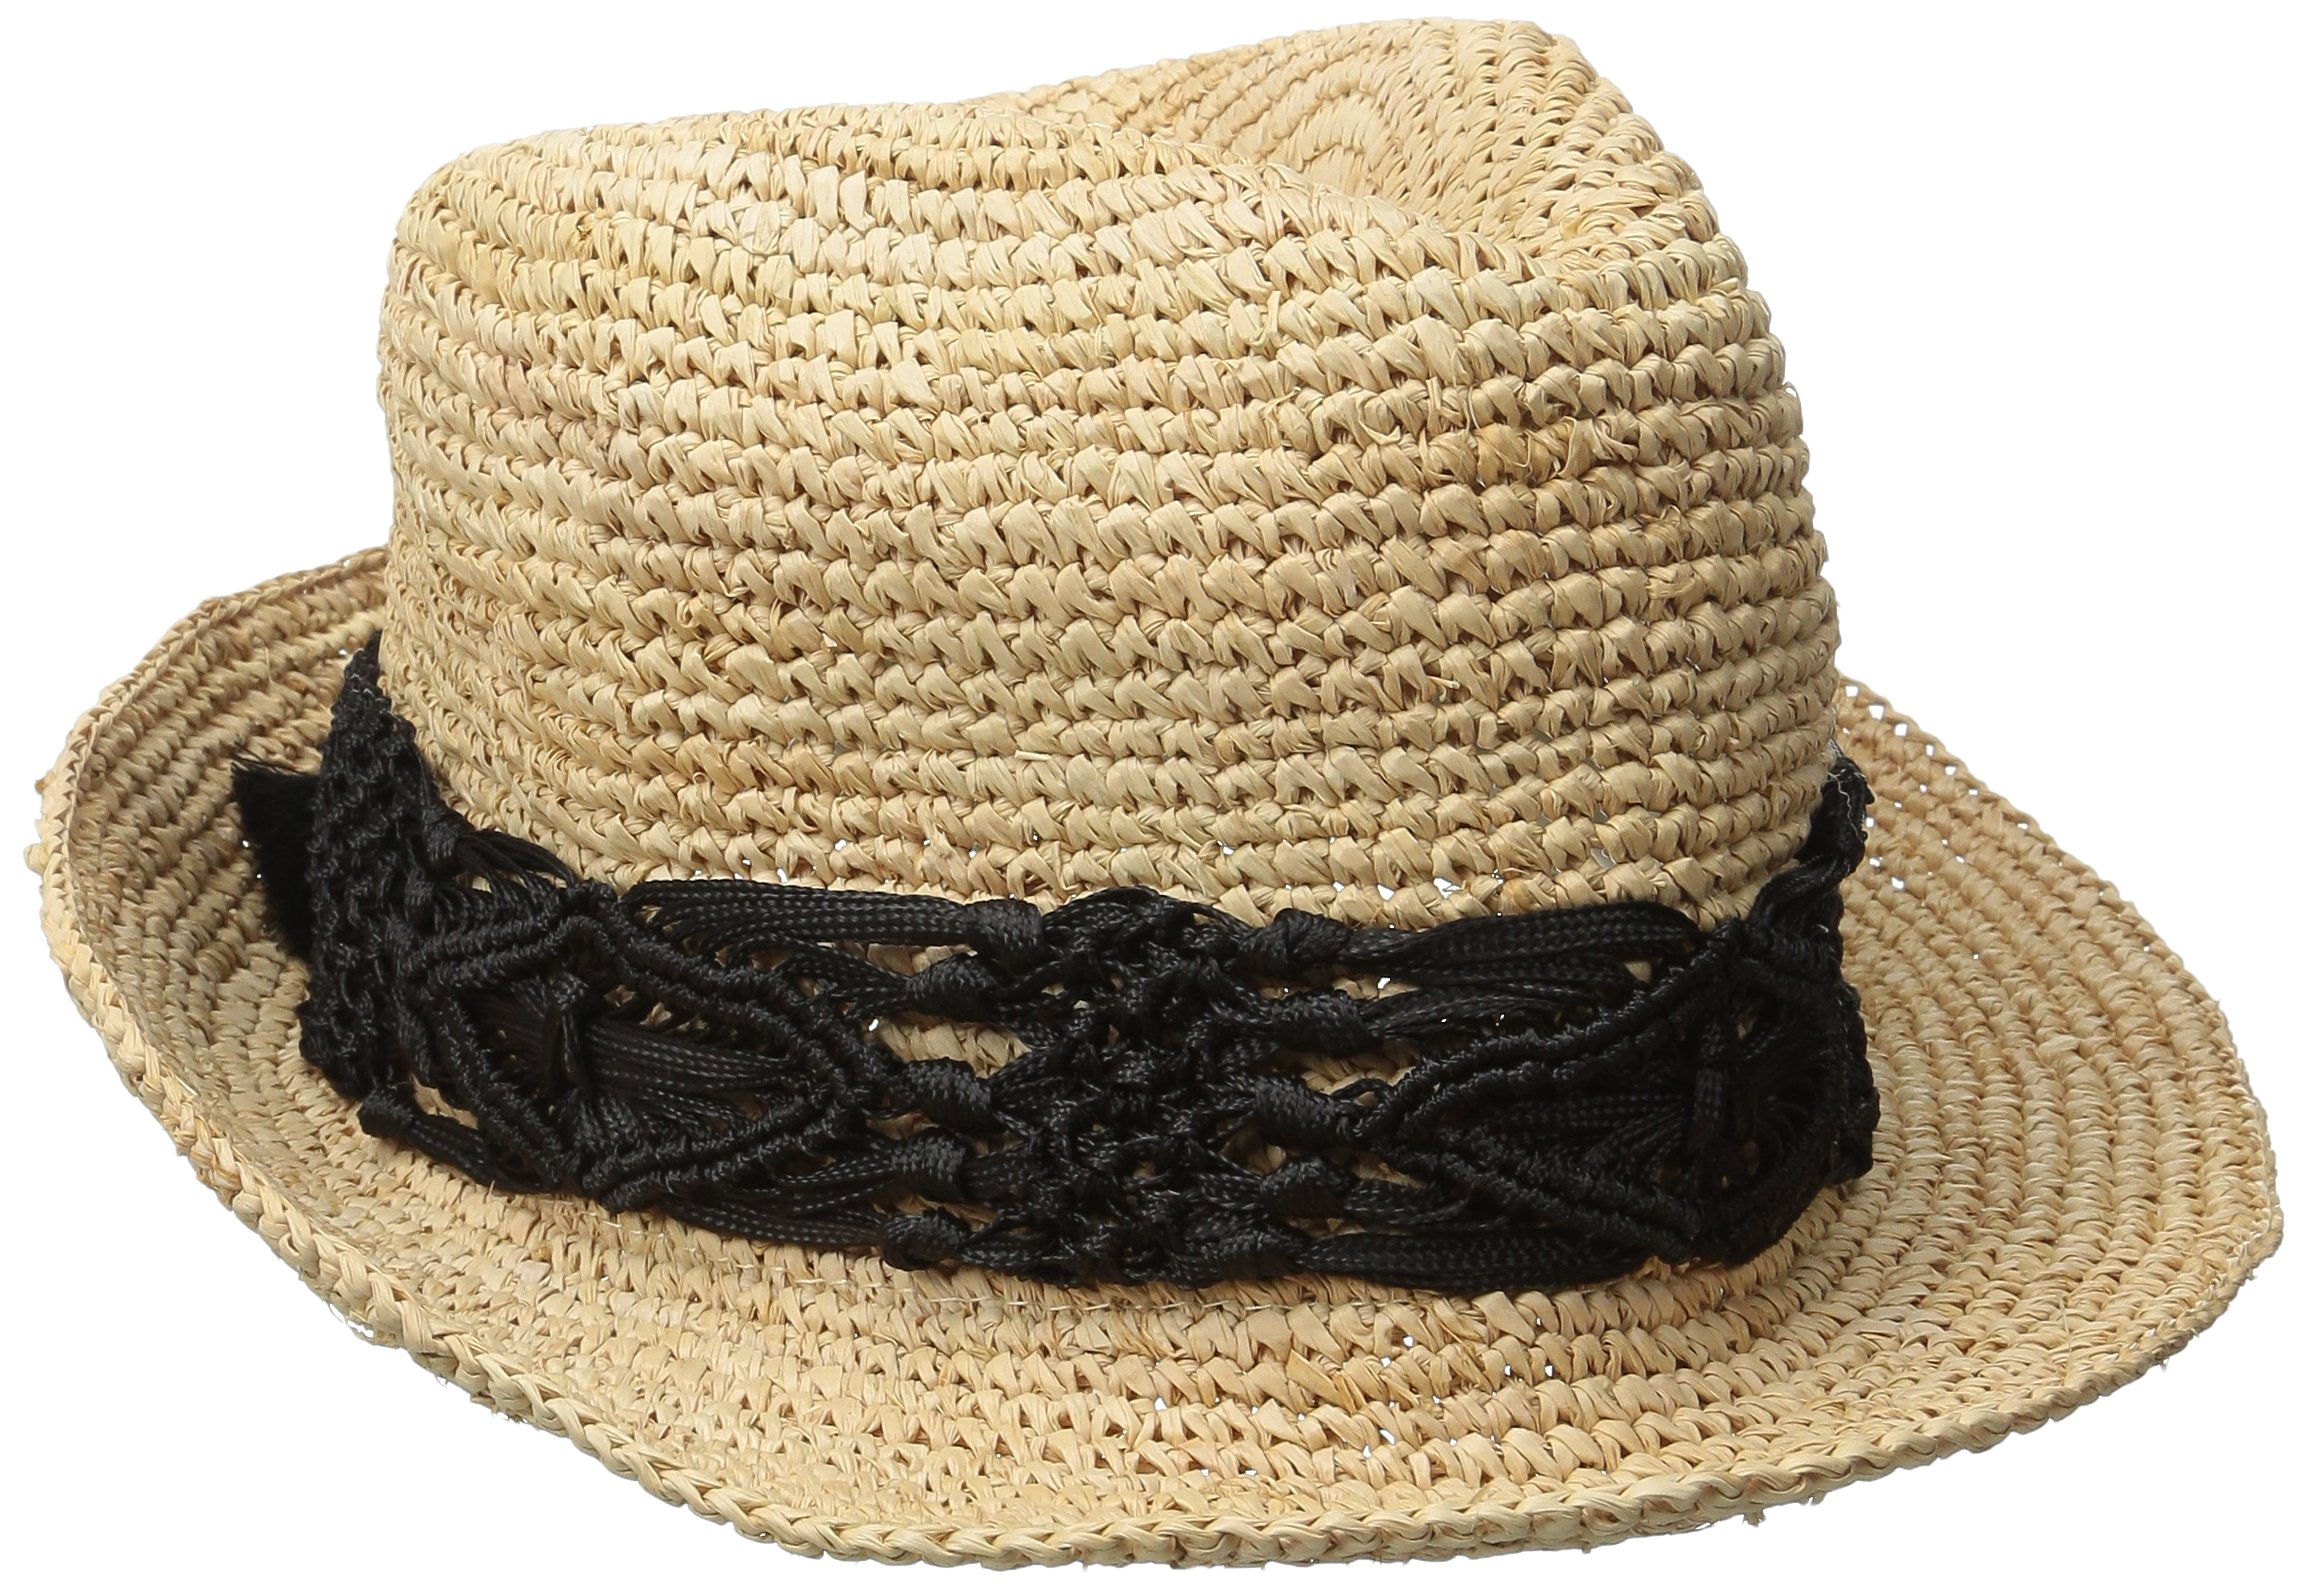 Physician Endorsed Women's Malia Crochet Raffia Sun Hat with Macrame Trim, Rated UPF 30 for Sun Protection, Black, One Size